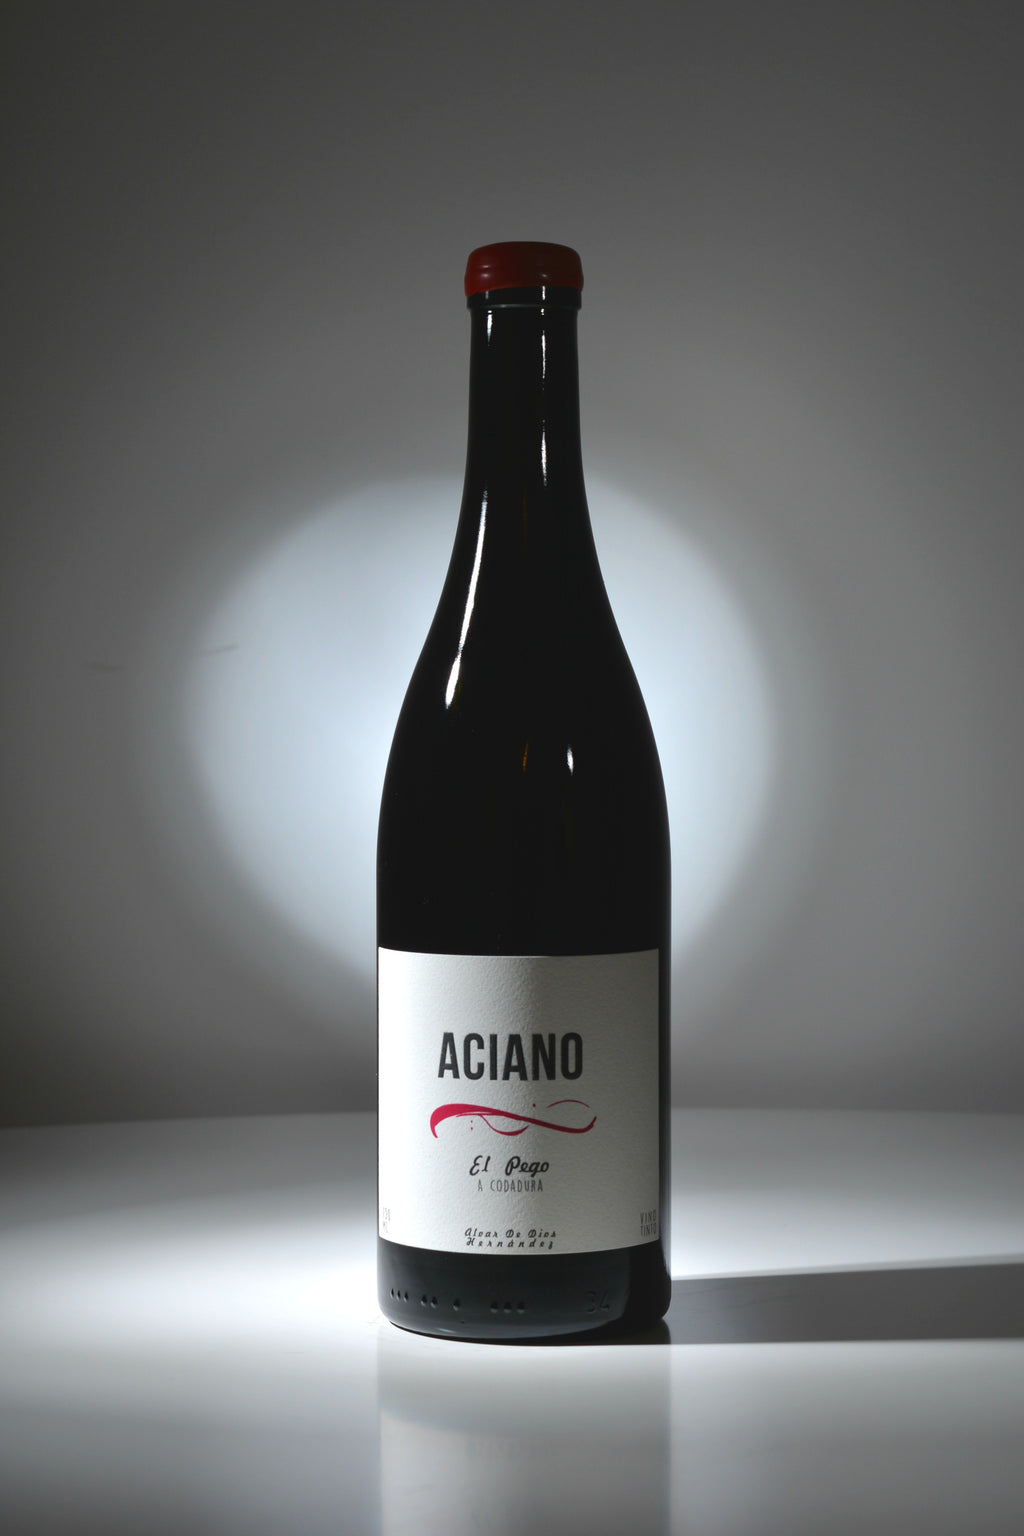 Aciano 2015 - The Royal Bottle